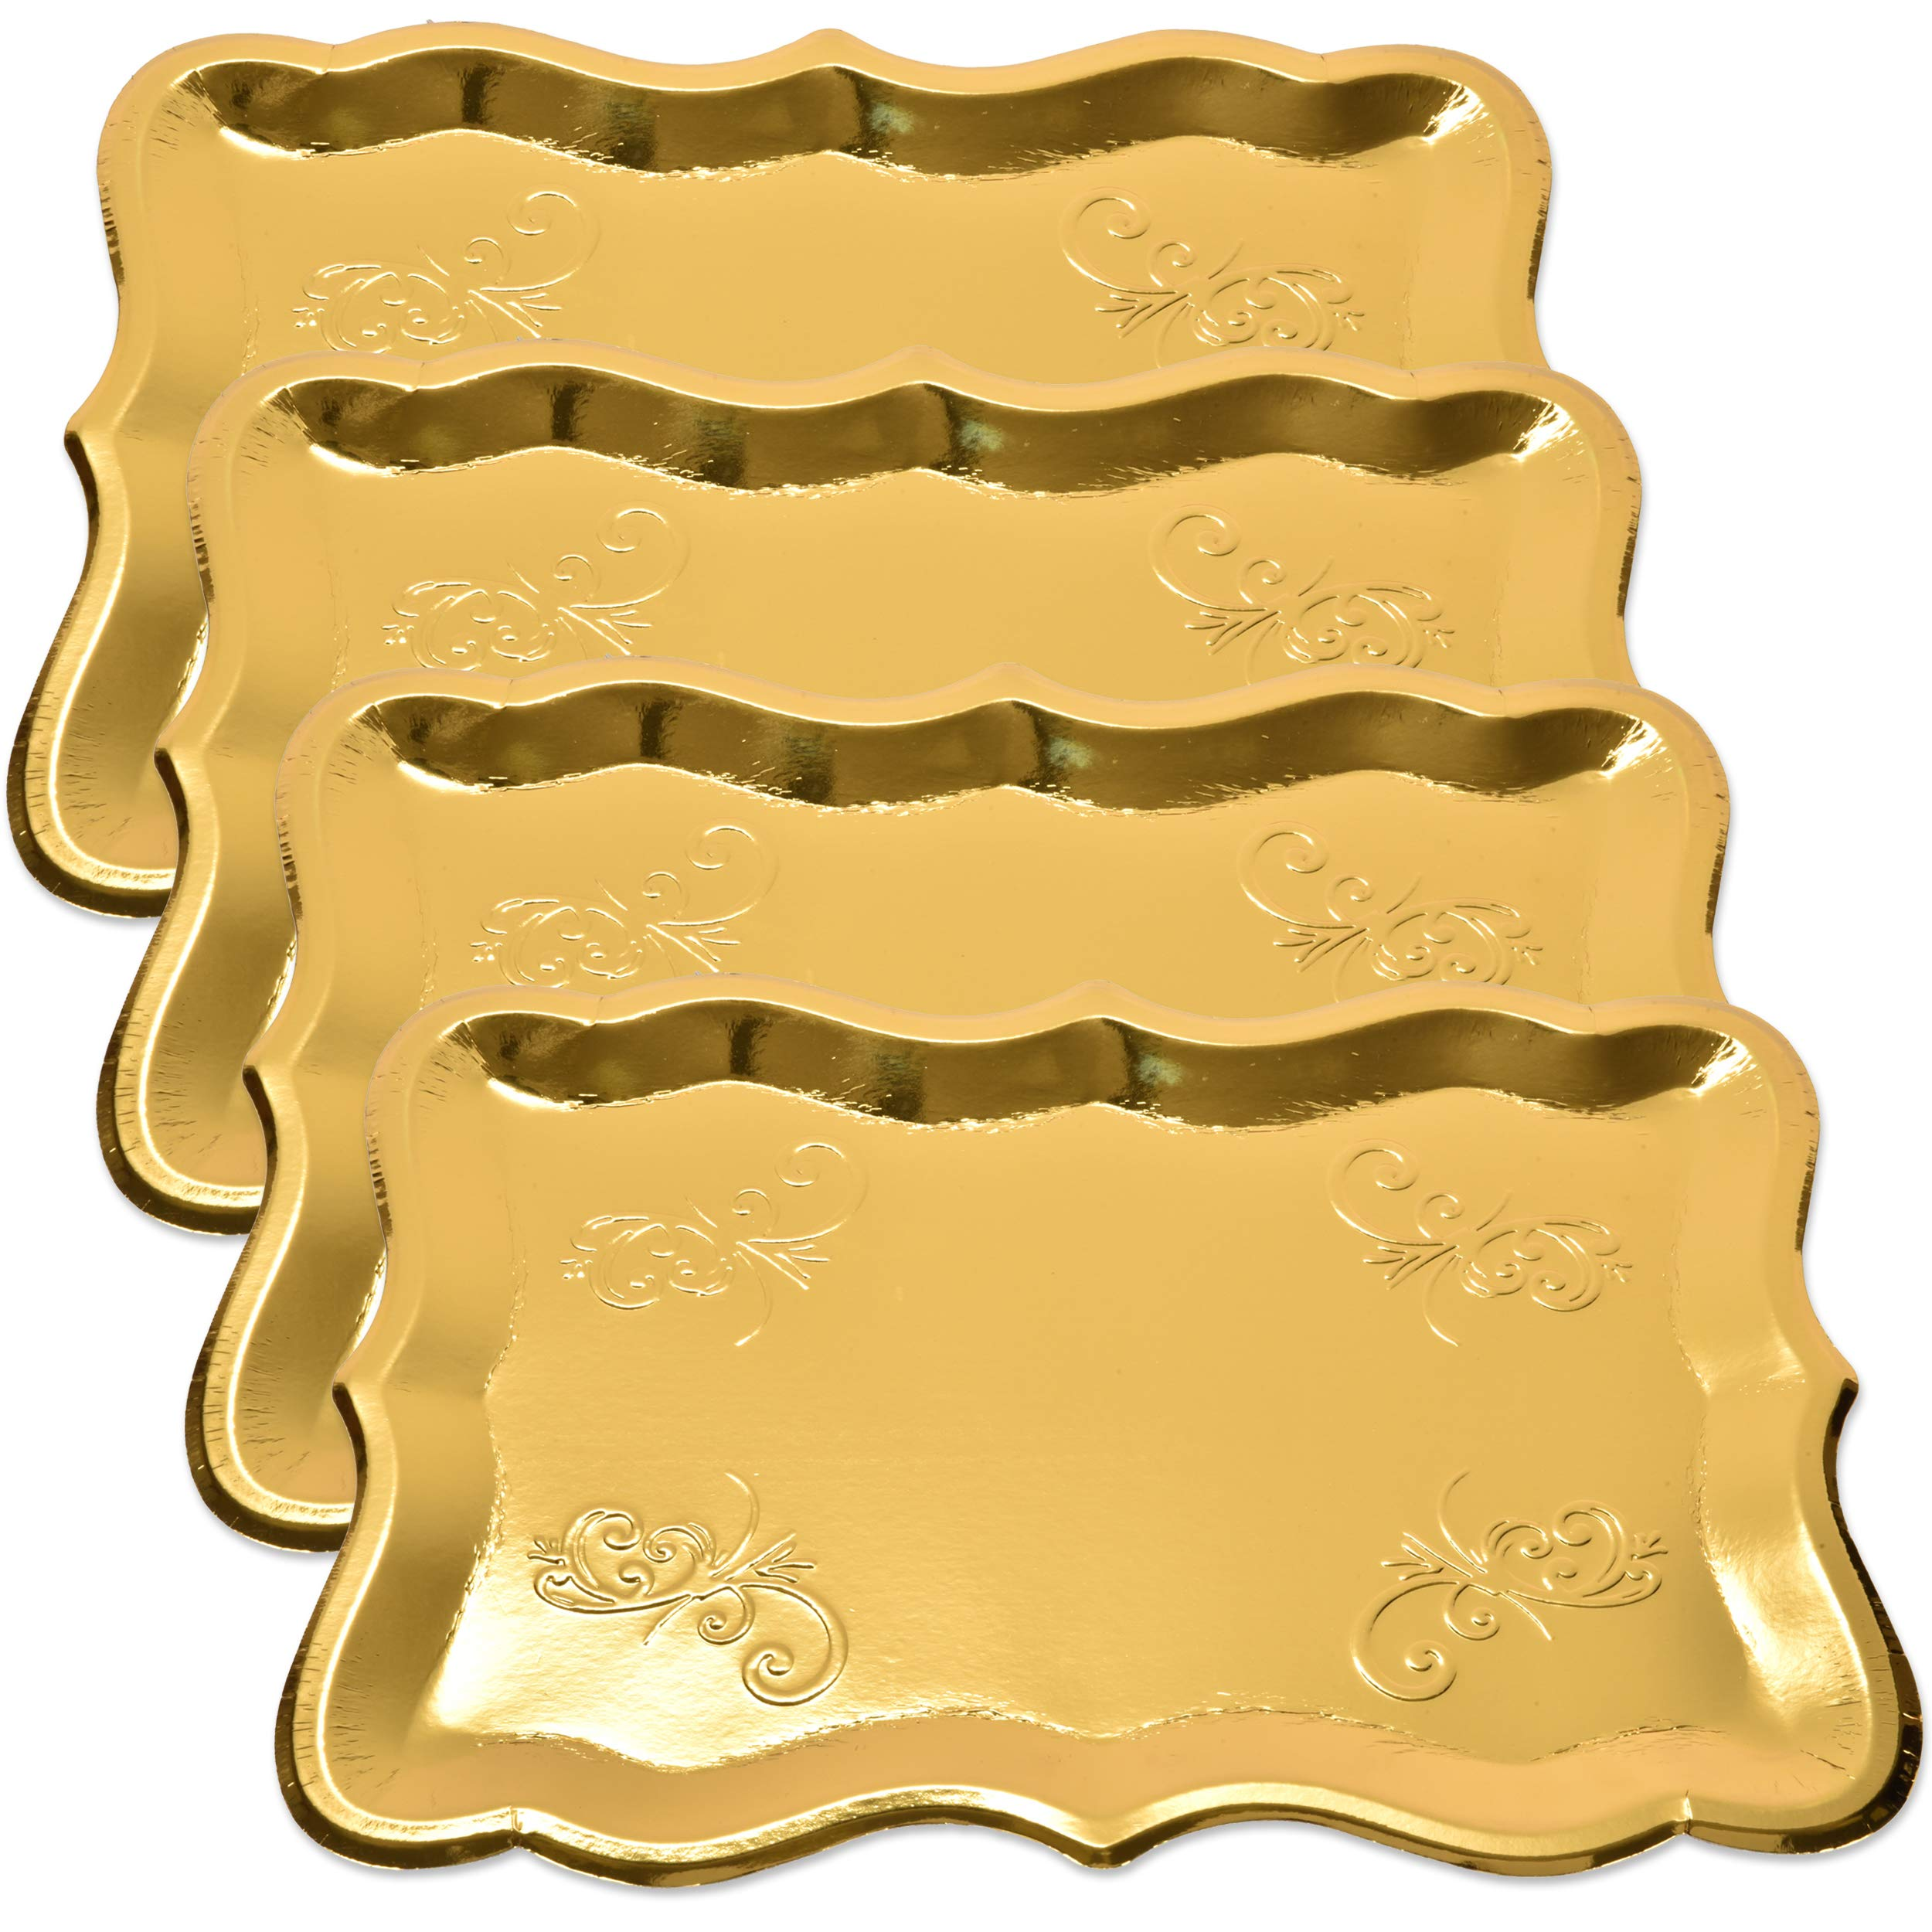 10 Gold Rectangle Trays for Dessert Table Serving Parties 9'' x 13'' Heavy Duty Disposable Paper Cardboard in Elegant Shape for Platters, Cupcake, Birthday Parties, Dessert, Weddings and More Food Safe by Gift Boutique